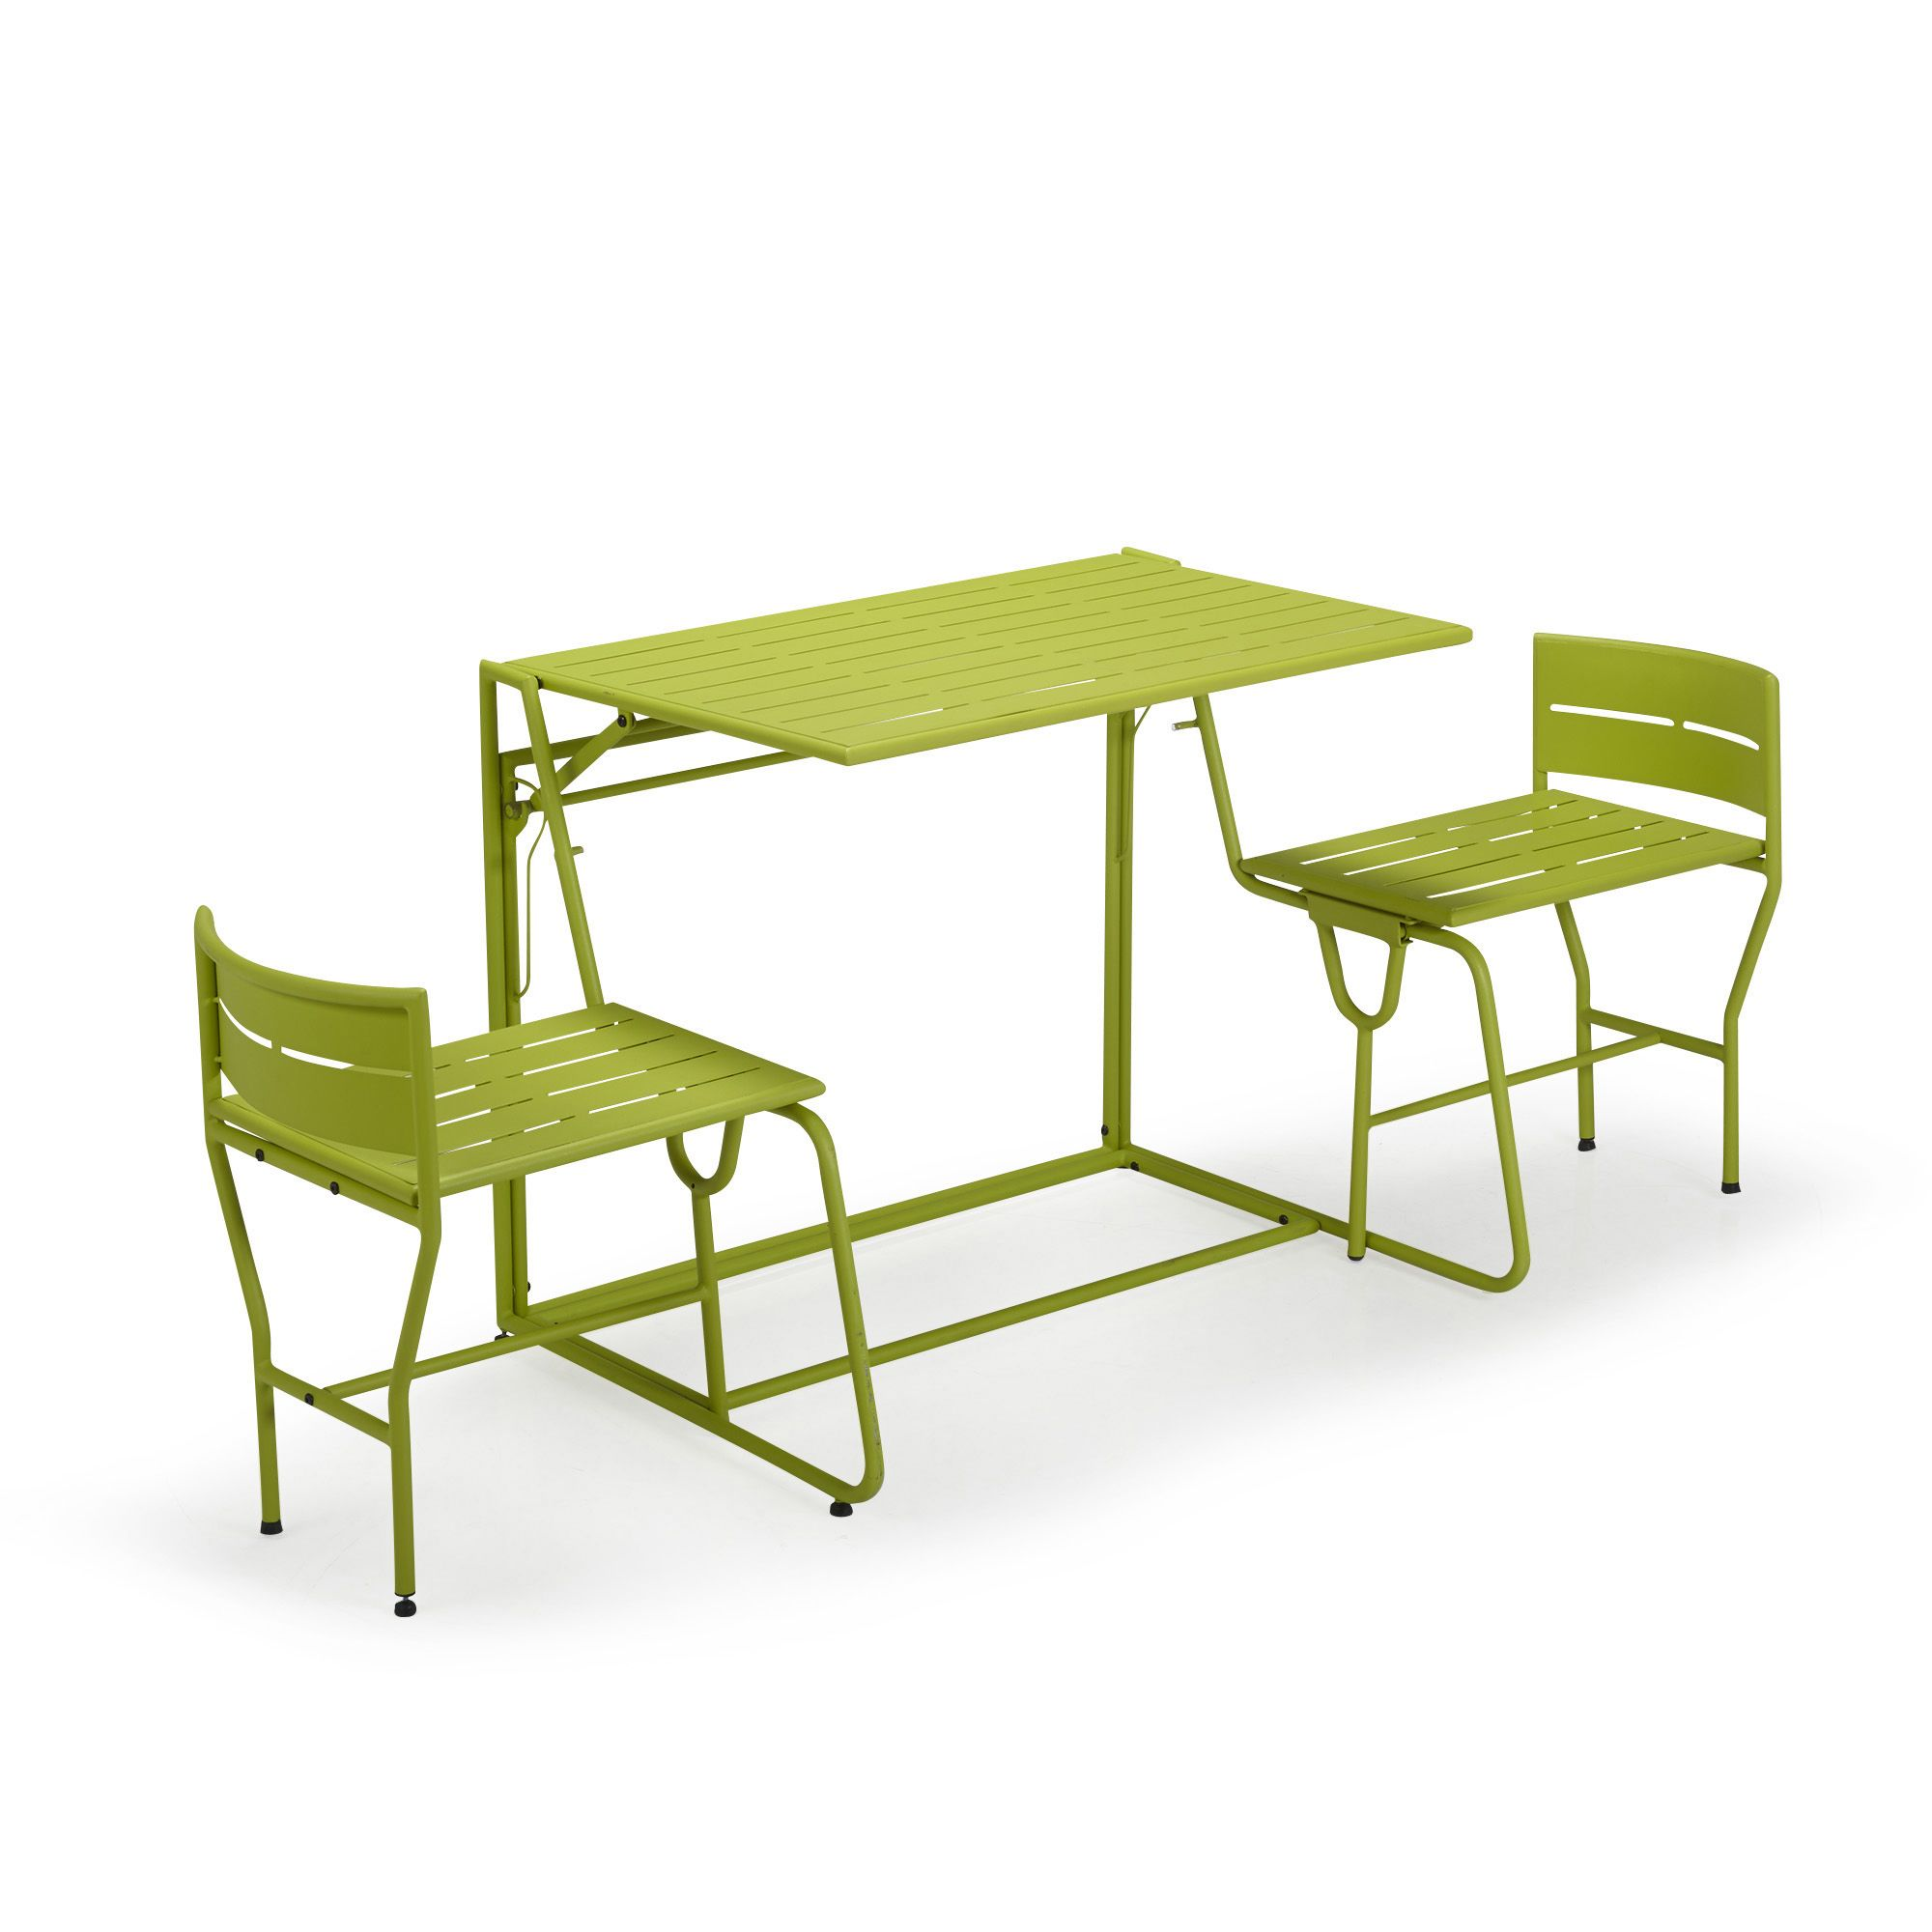 Picnic le salon de jardin balcon transformable 2 en 1 for Salon de jardin toulouse